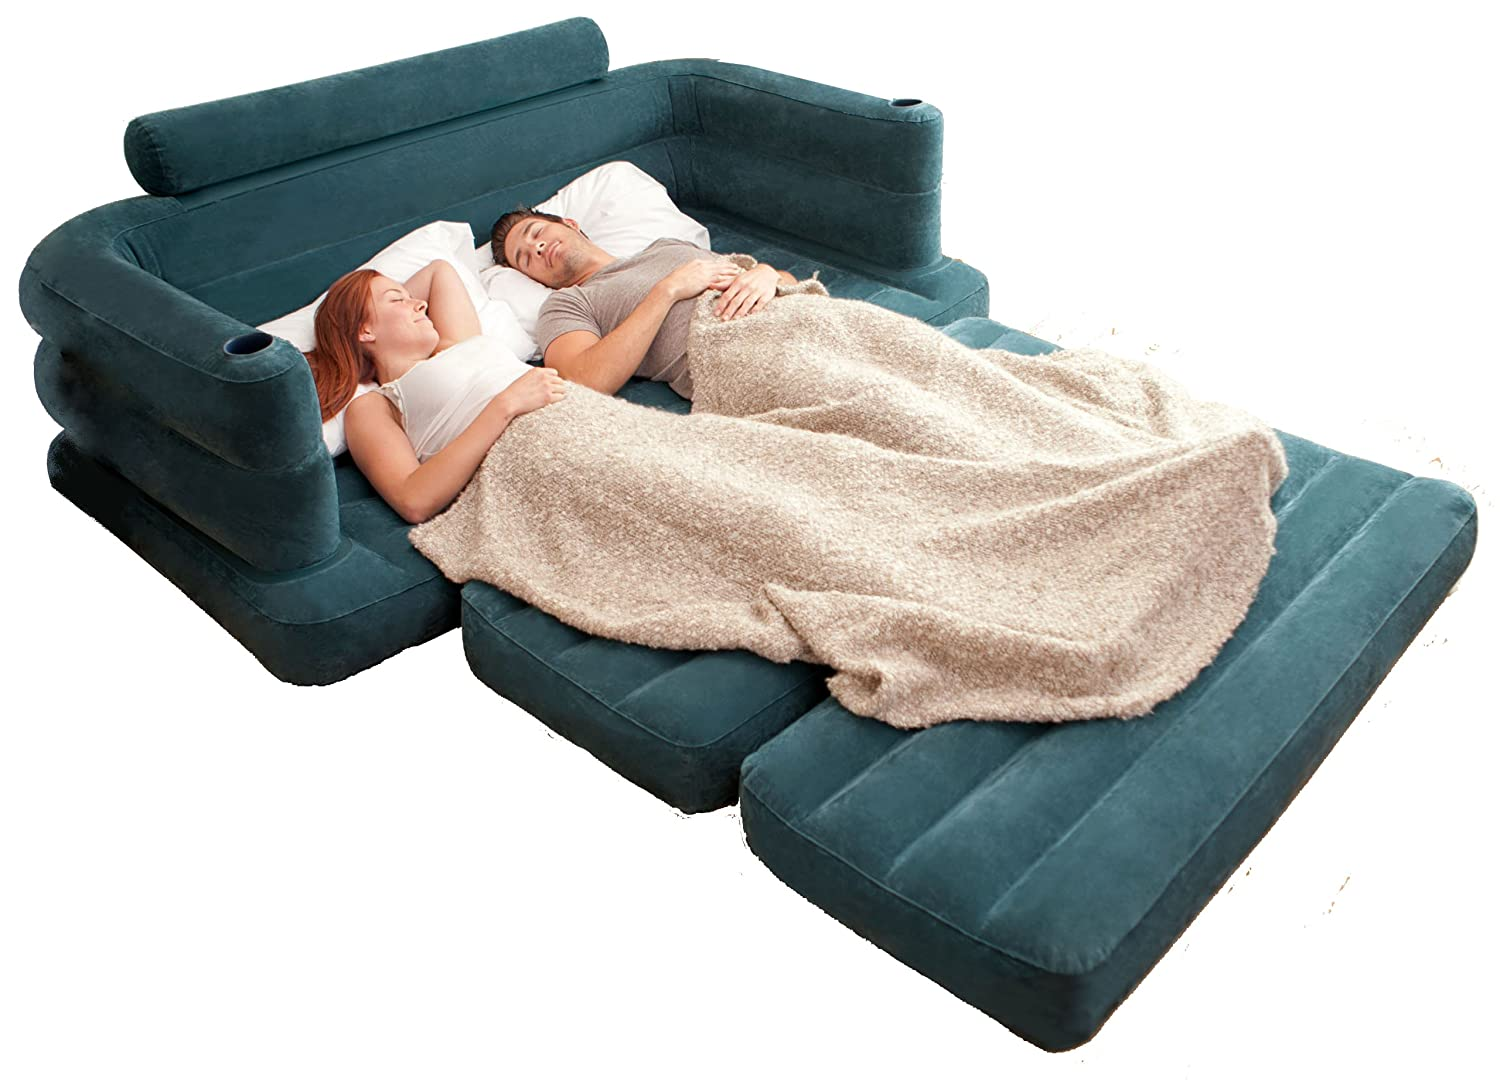 Intex Inflatable Pull Out Sofa Bed Home Pump Lazada  : 81DfbgvWP2LSL1500 from www.lazada.com.my size 1500 x 1082 jpeg 194kB